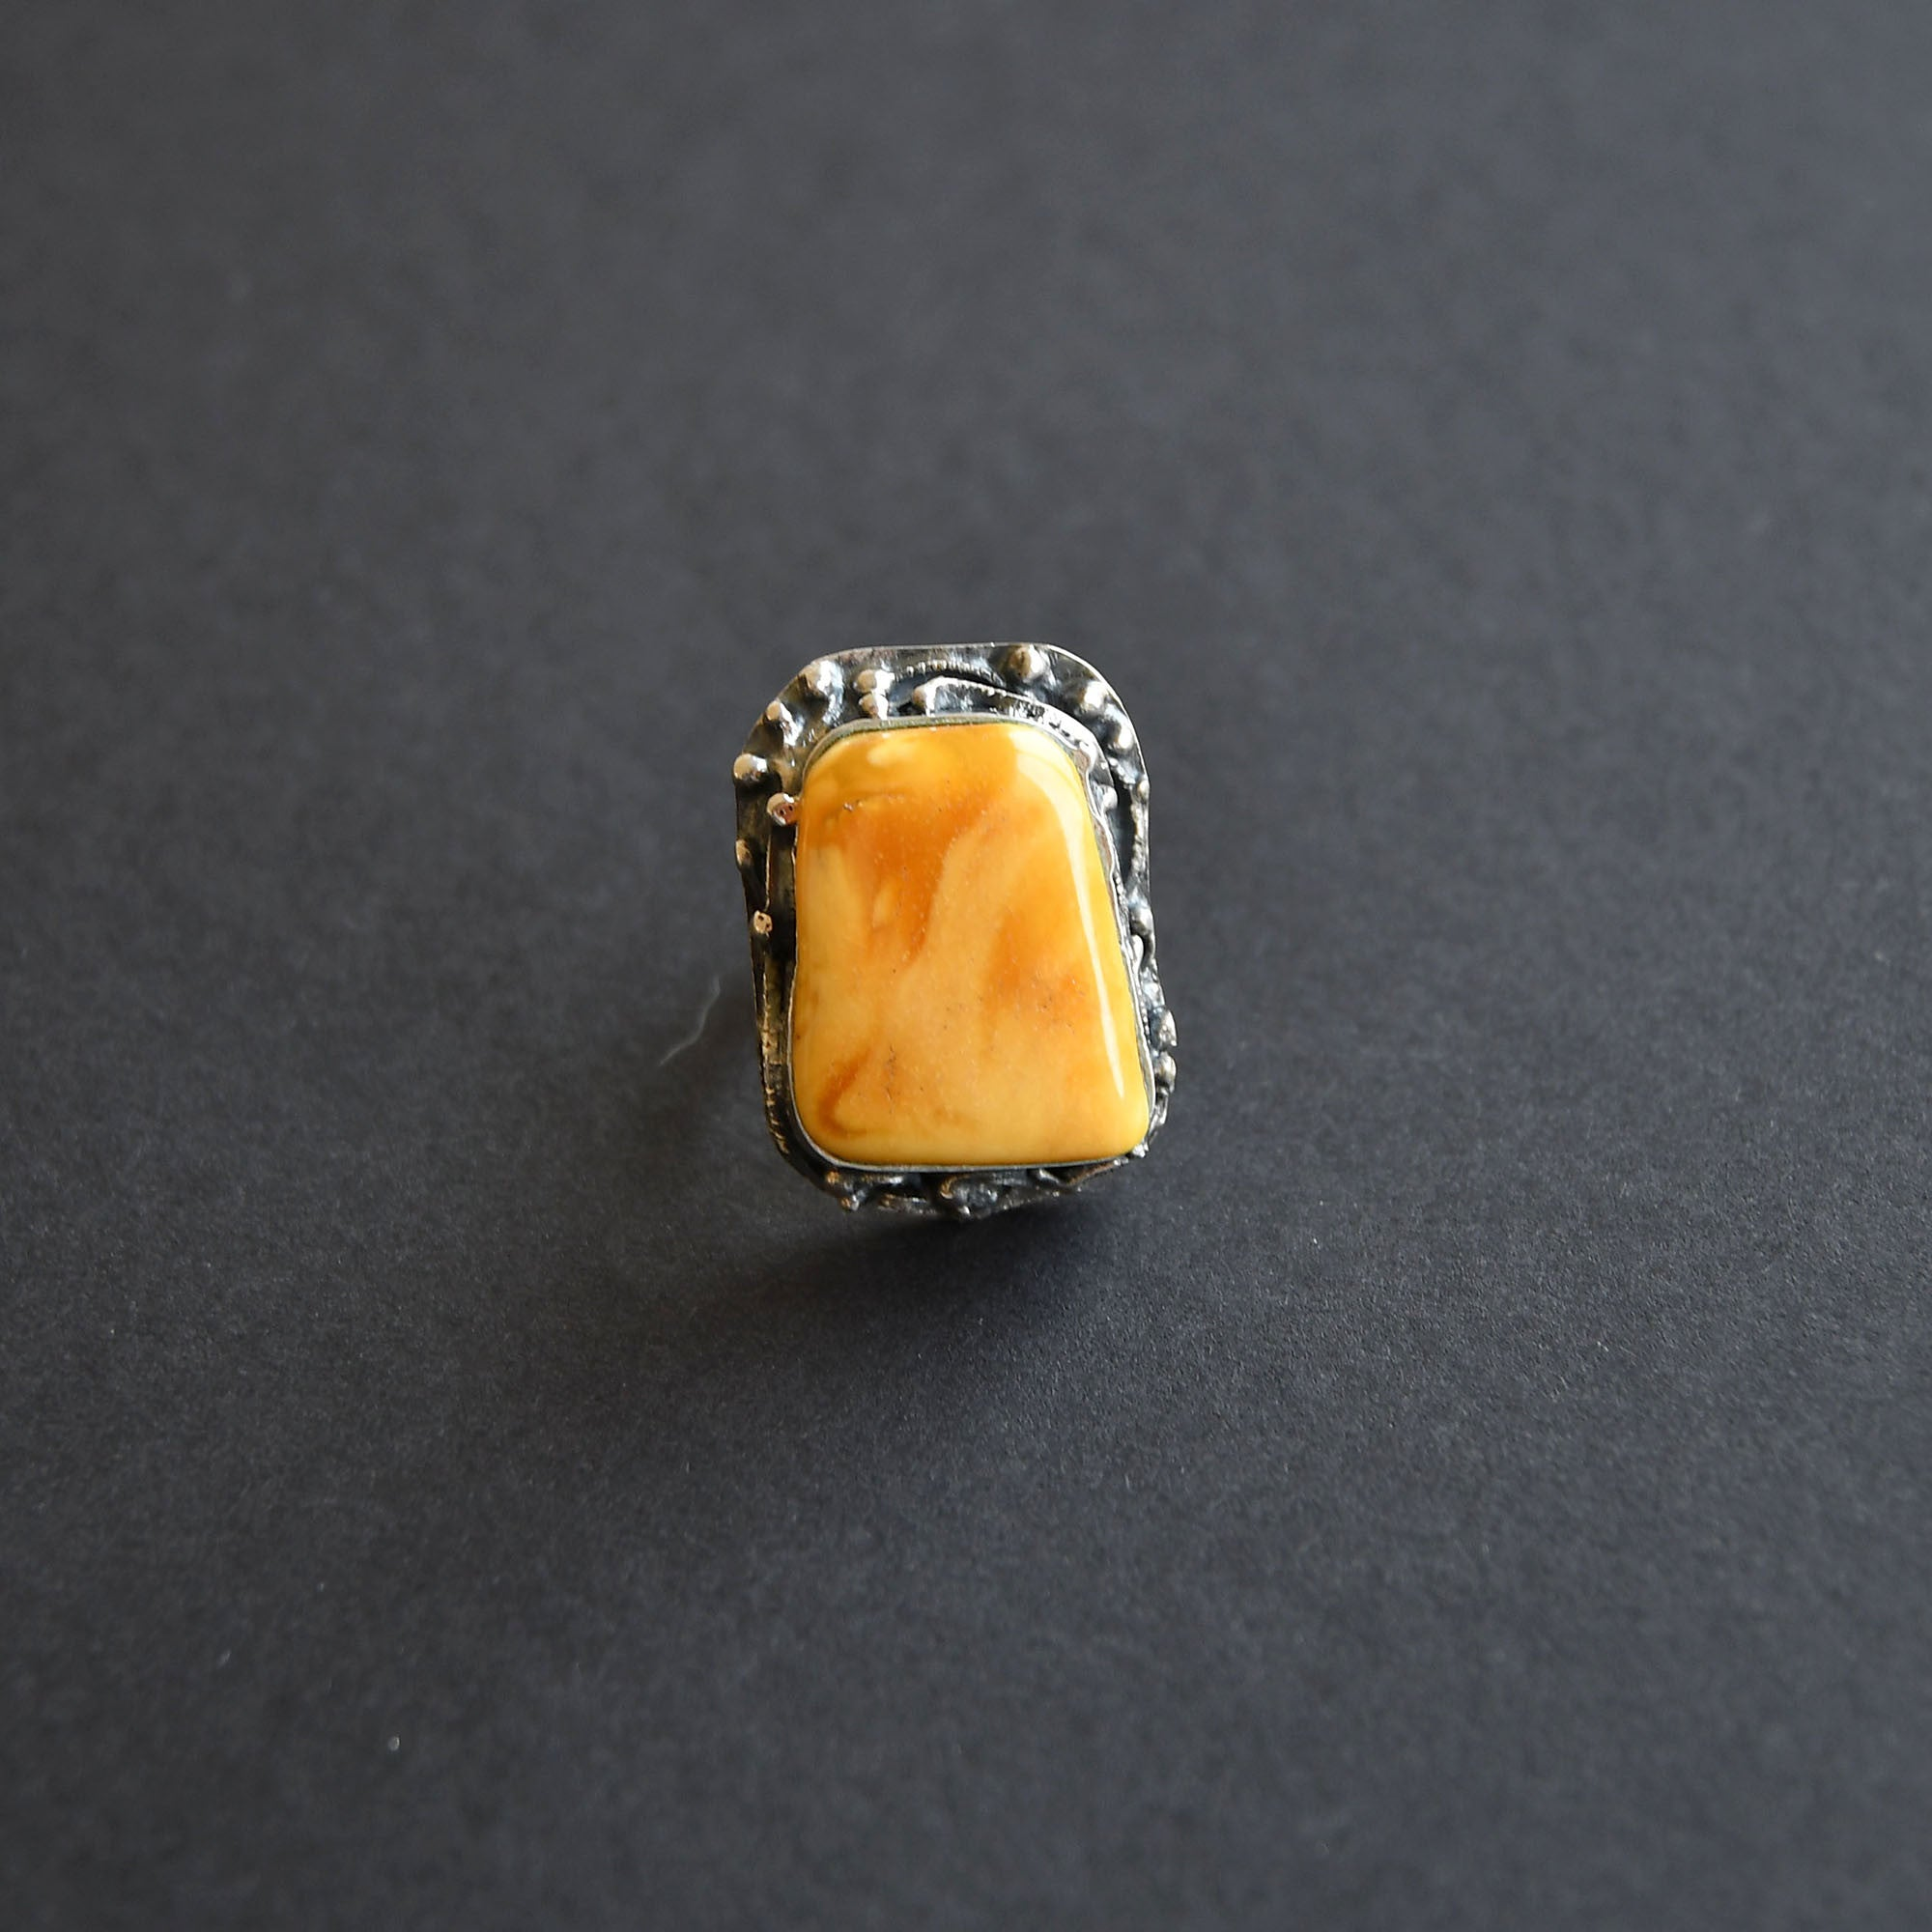 A ring with an old orange amber in silver setting